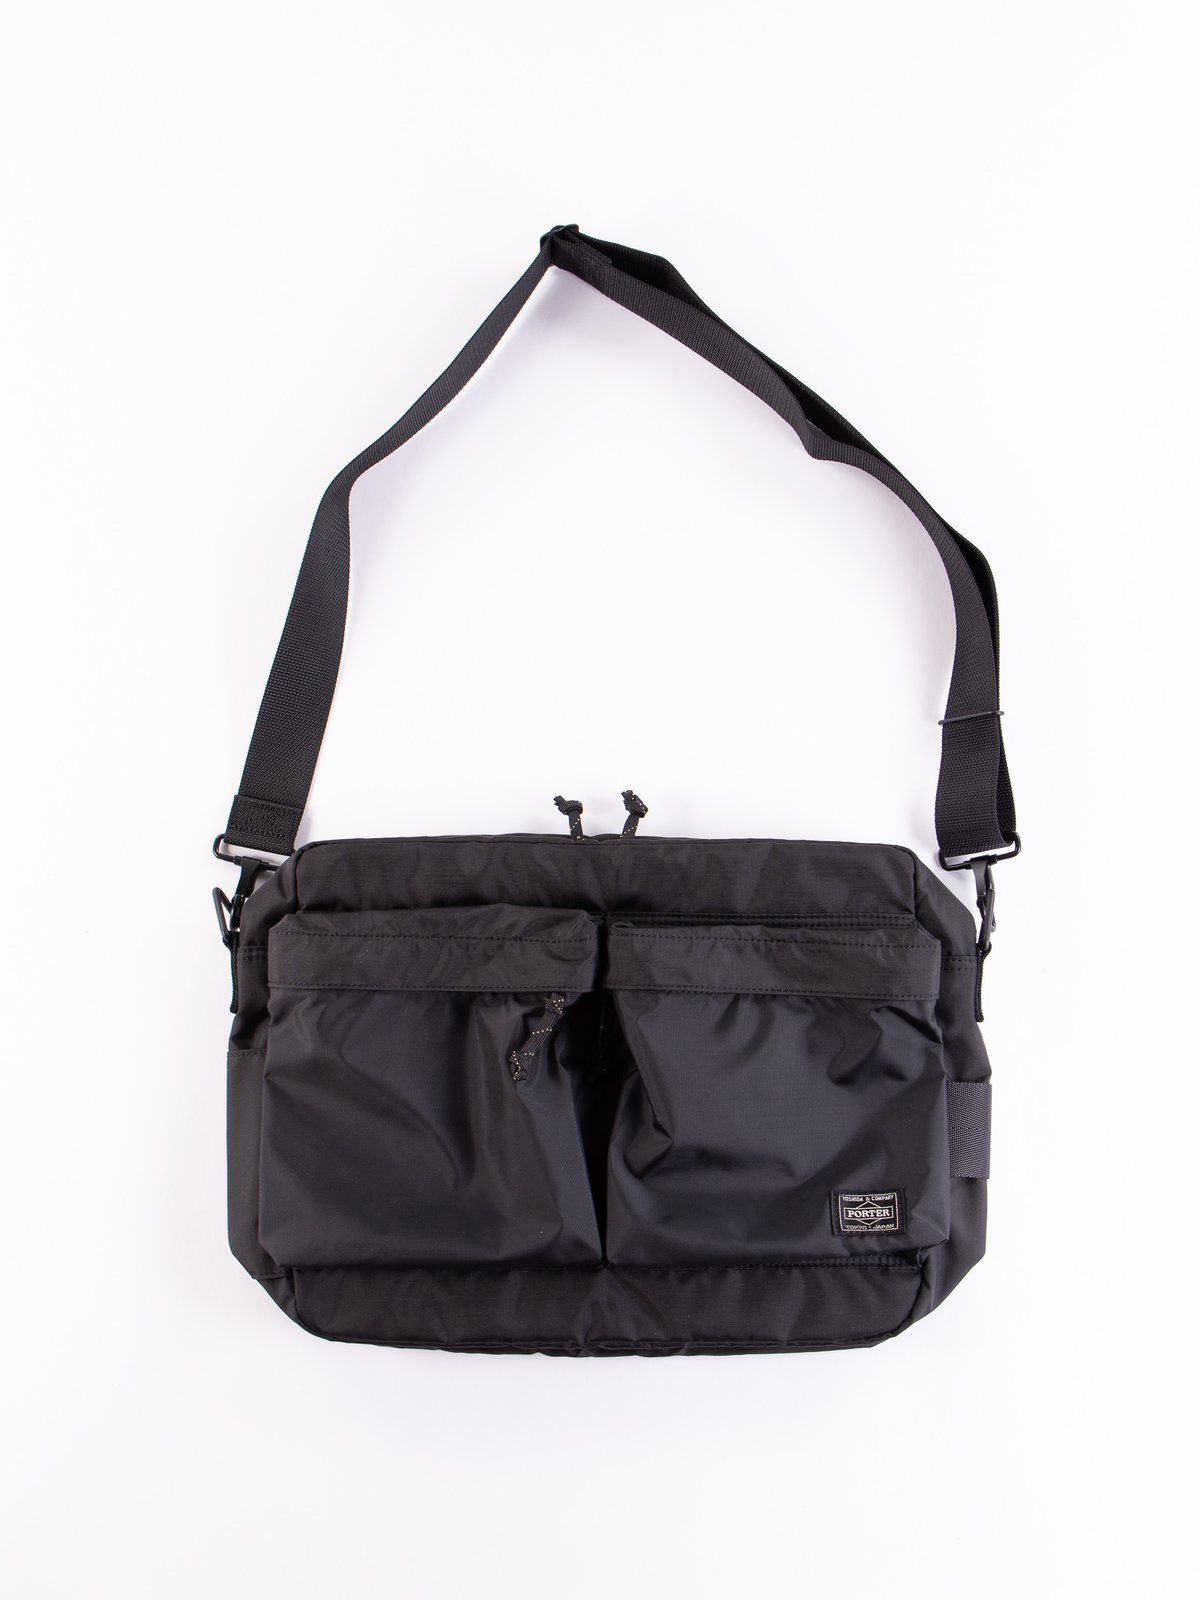 Black Medium Force Shoulder Bag - Image 1